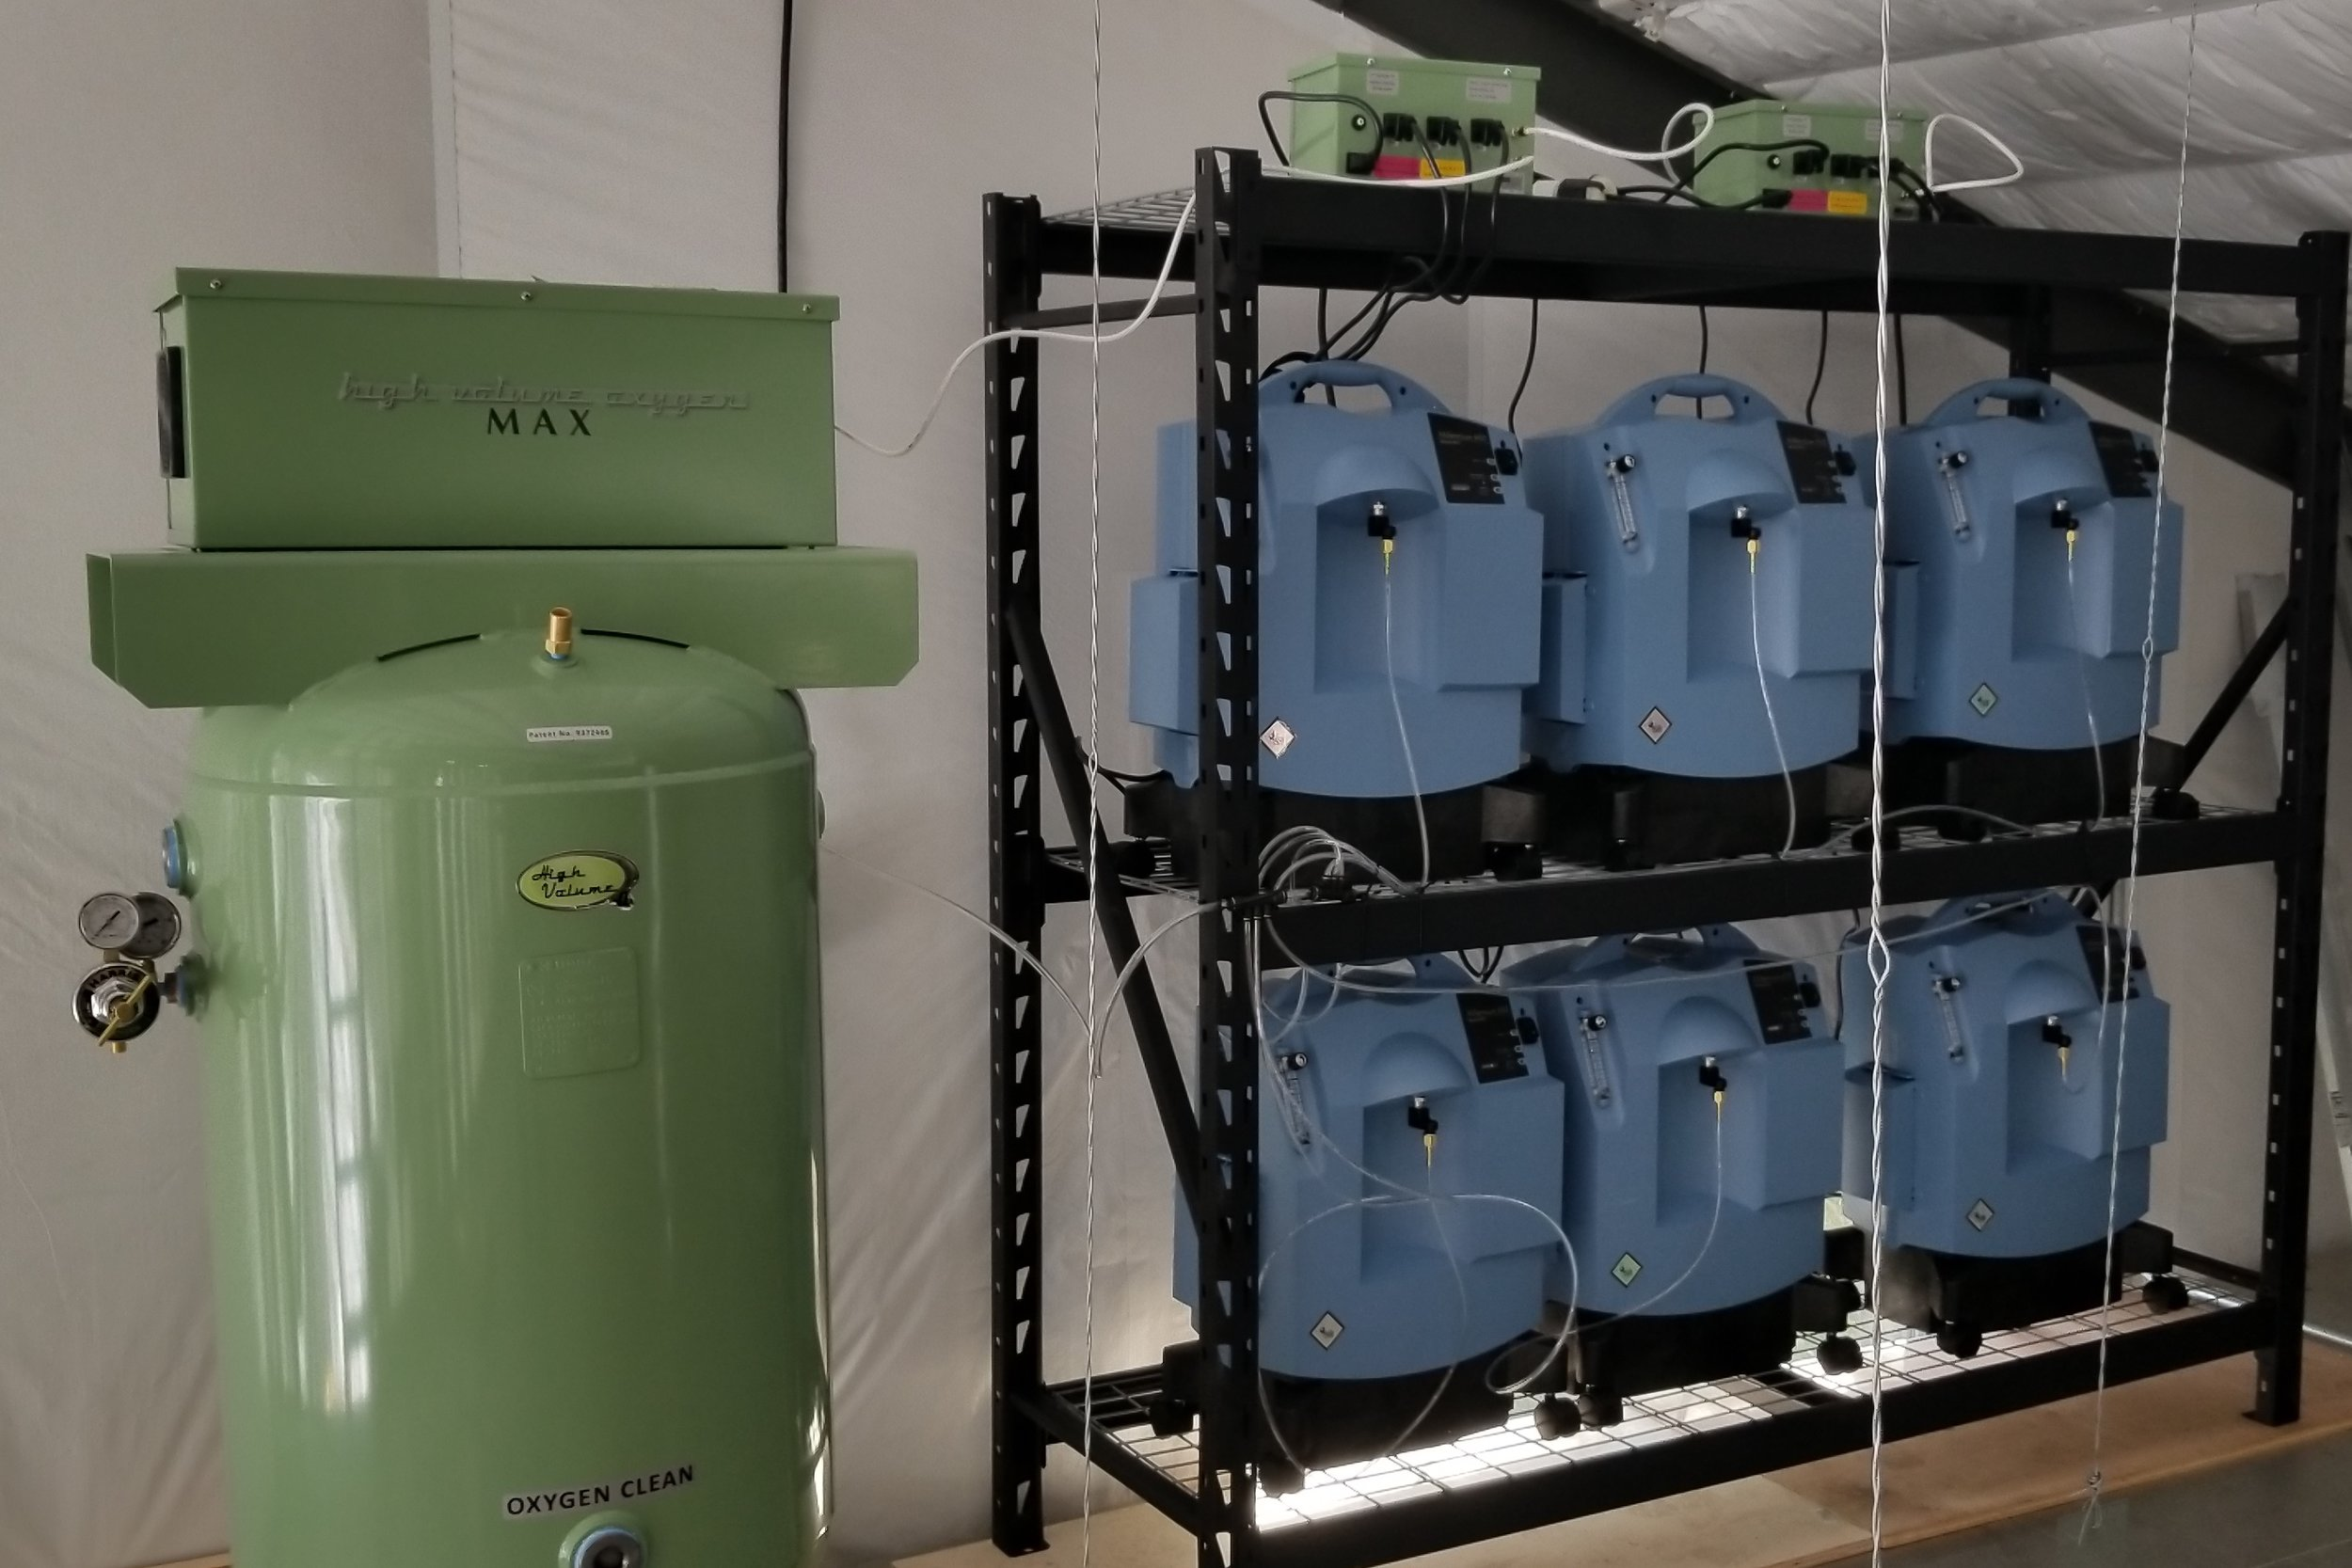 60 Liter per minute system with 80-gallons of storage